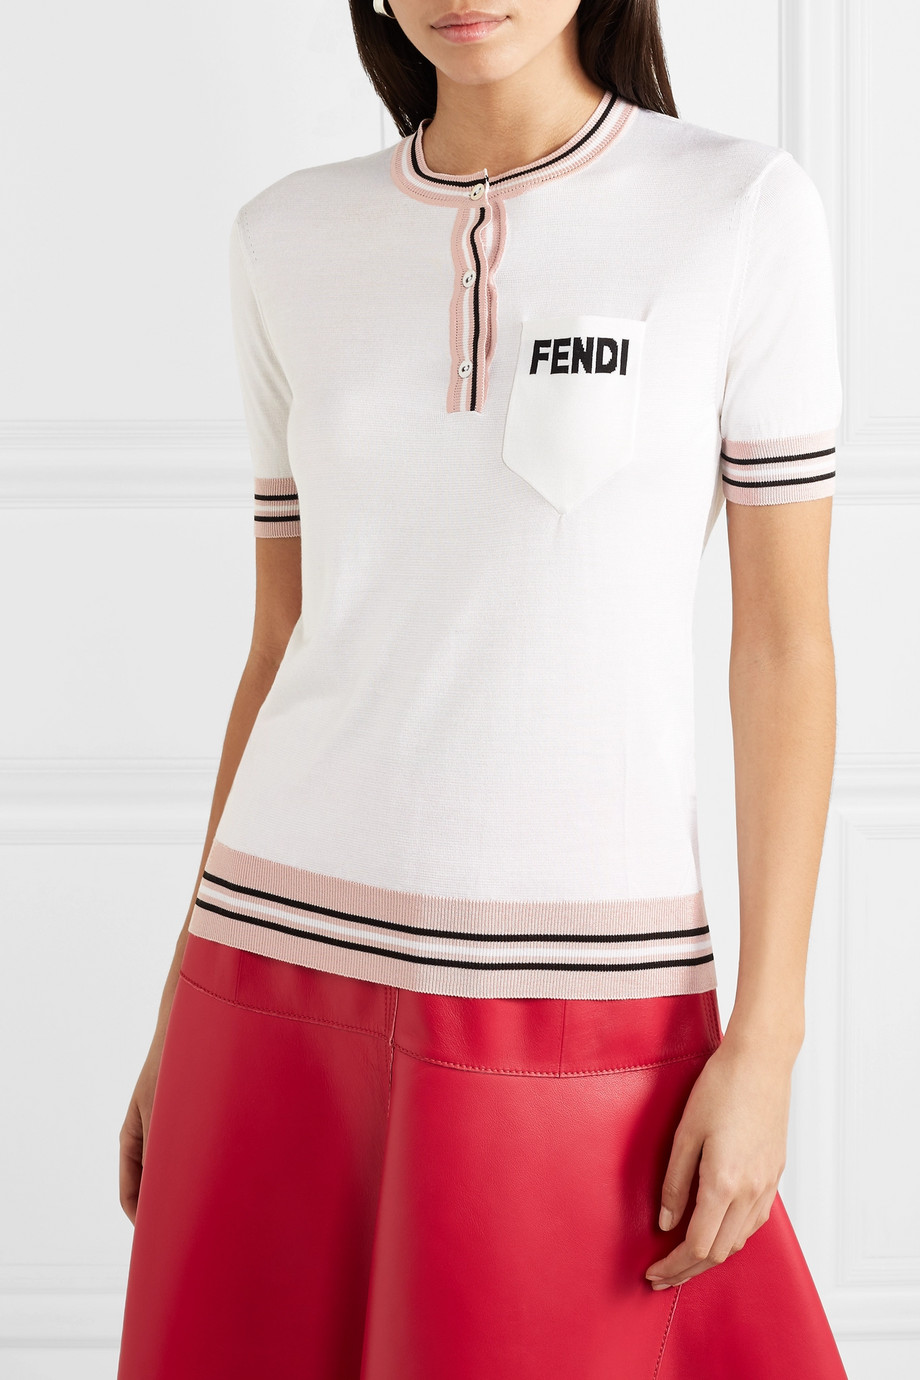 Silk blouse Fendi buy Silk blouse Fendi internet shop